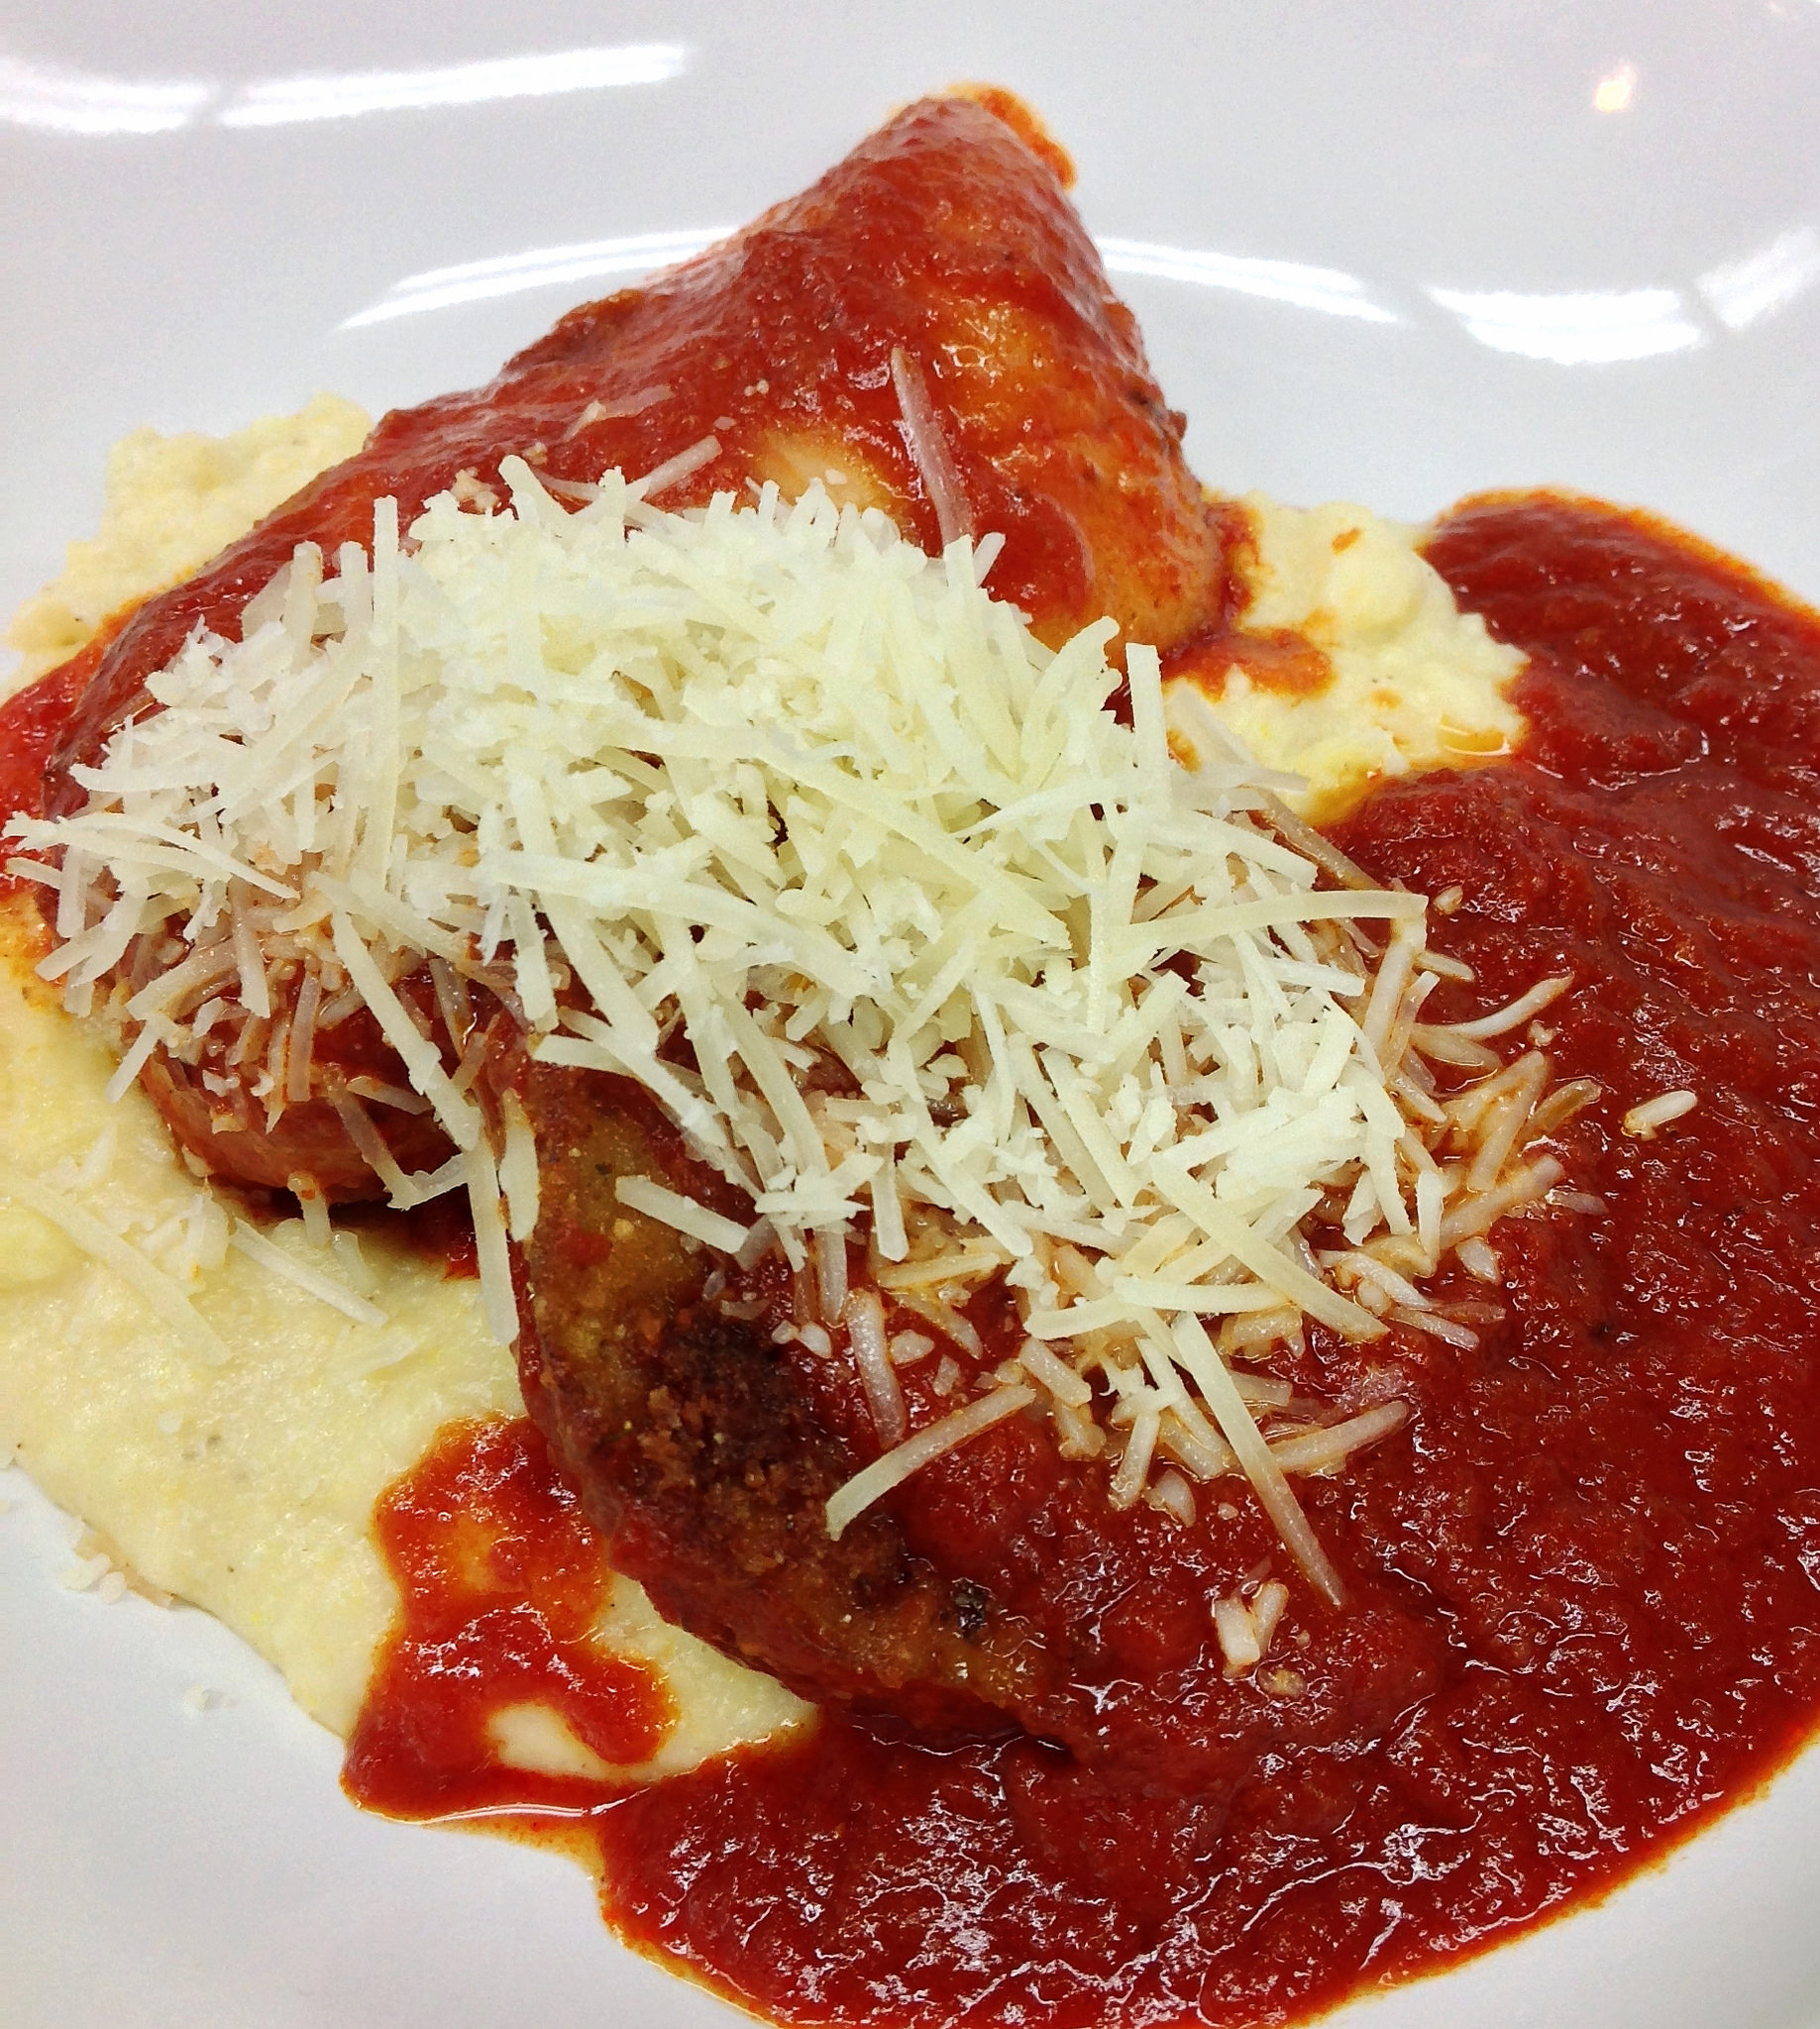 Chicken and eggplant parmigiano over polenta